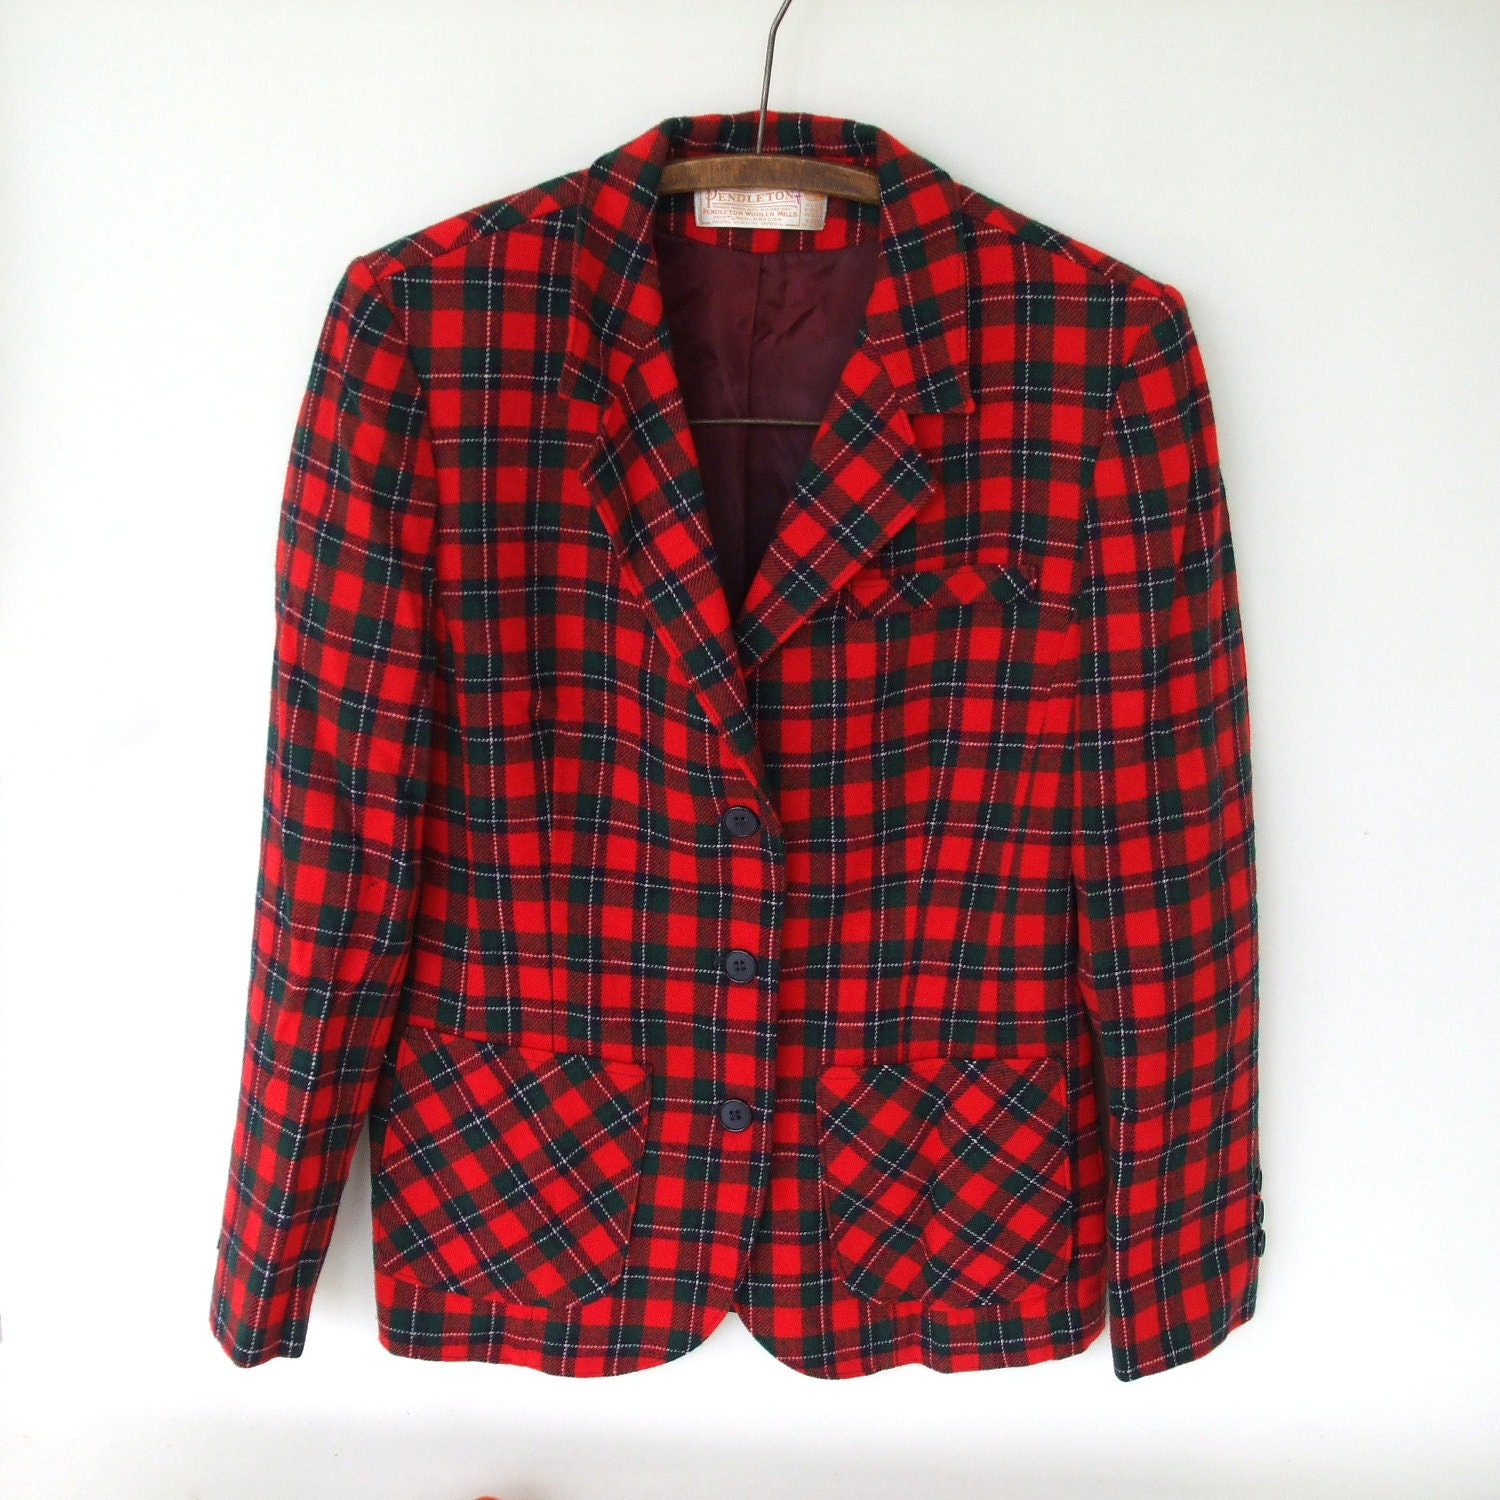 Nerdy Christmas Jacket - Pendleton Women's Tartan Plaid Blazer 4-6 ish Small